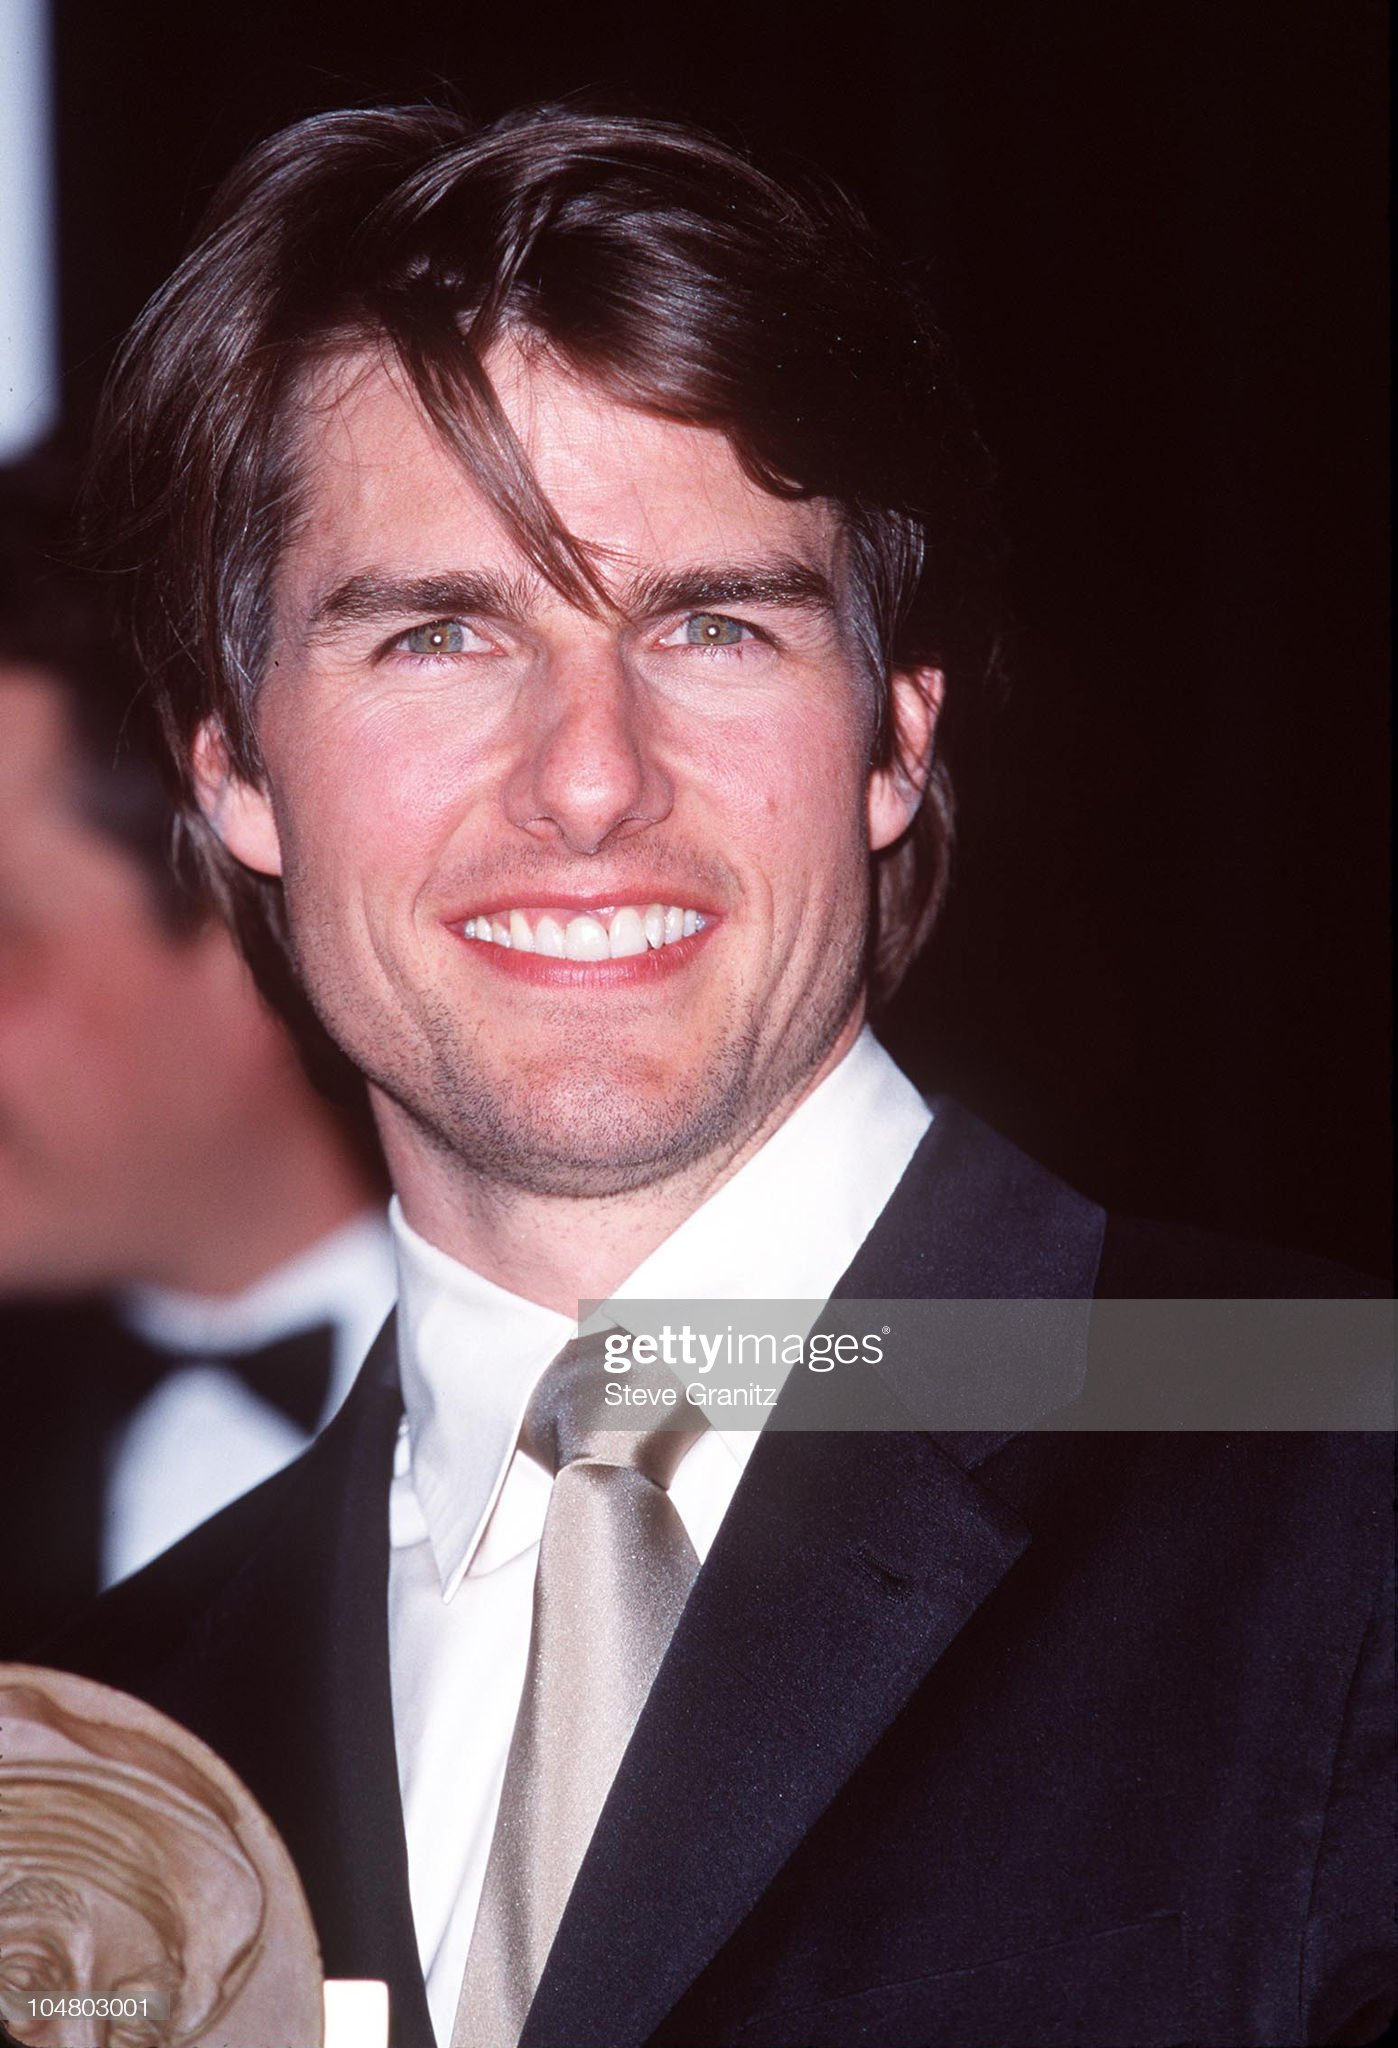 Tom Cruise (Galería de fotos) Tom-cruise-during-artists-rights-foundation-honors-tom-cruise-with-picture-id104803001?s=2048x2048